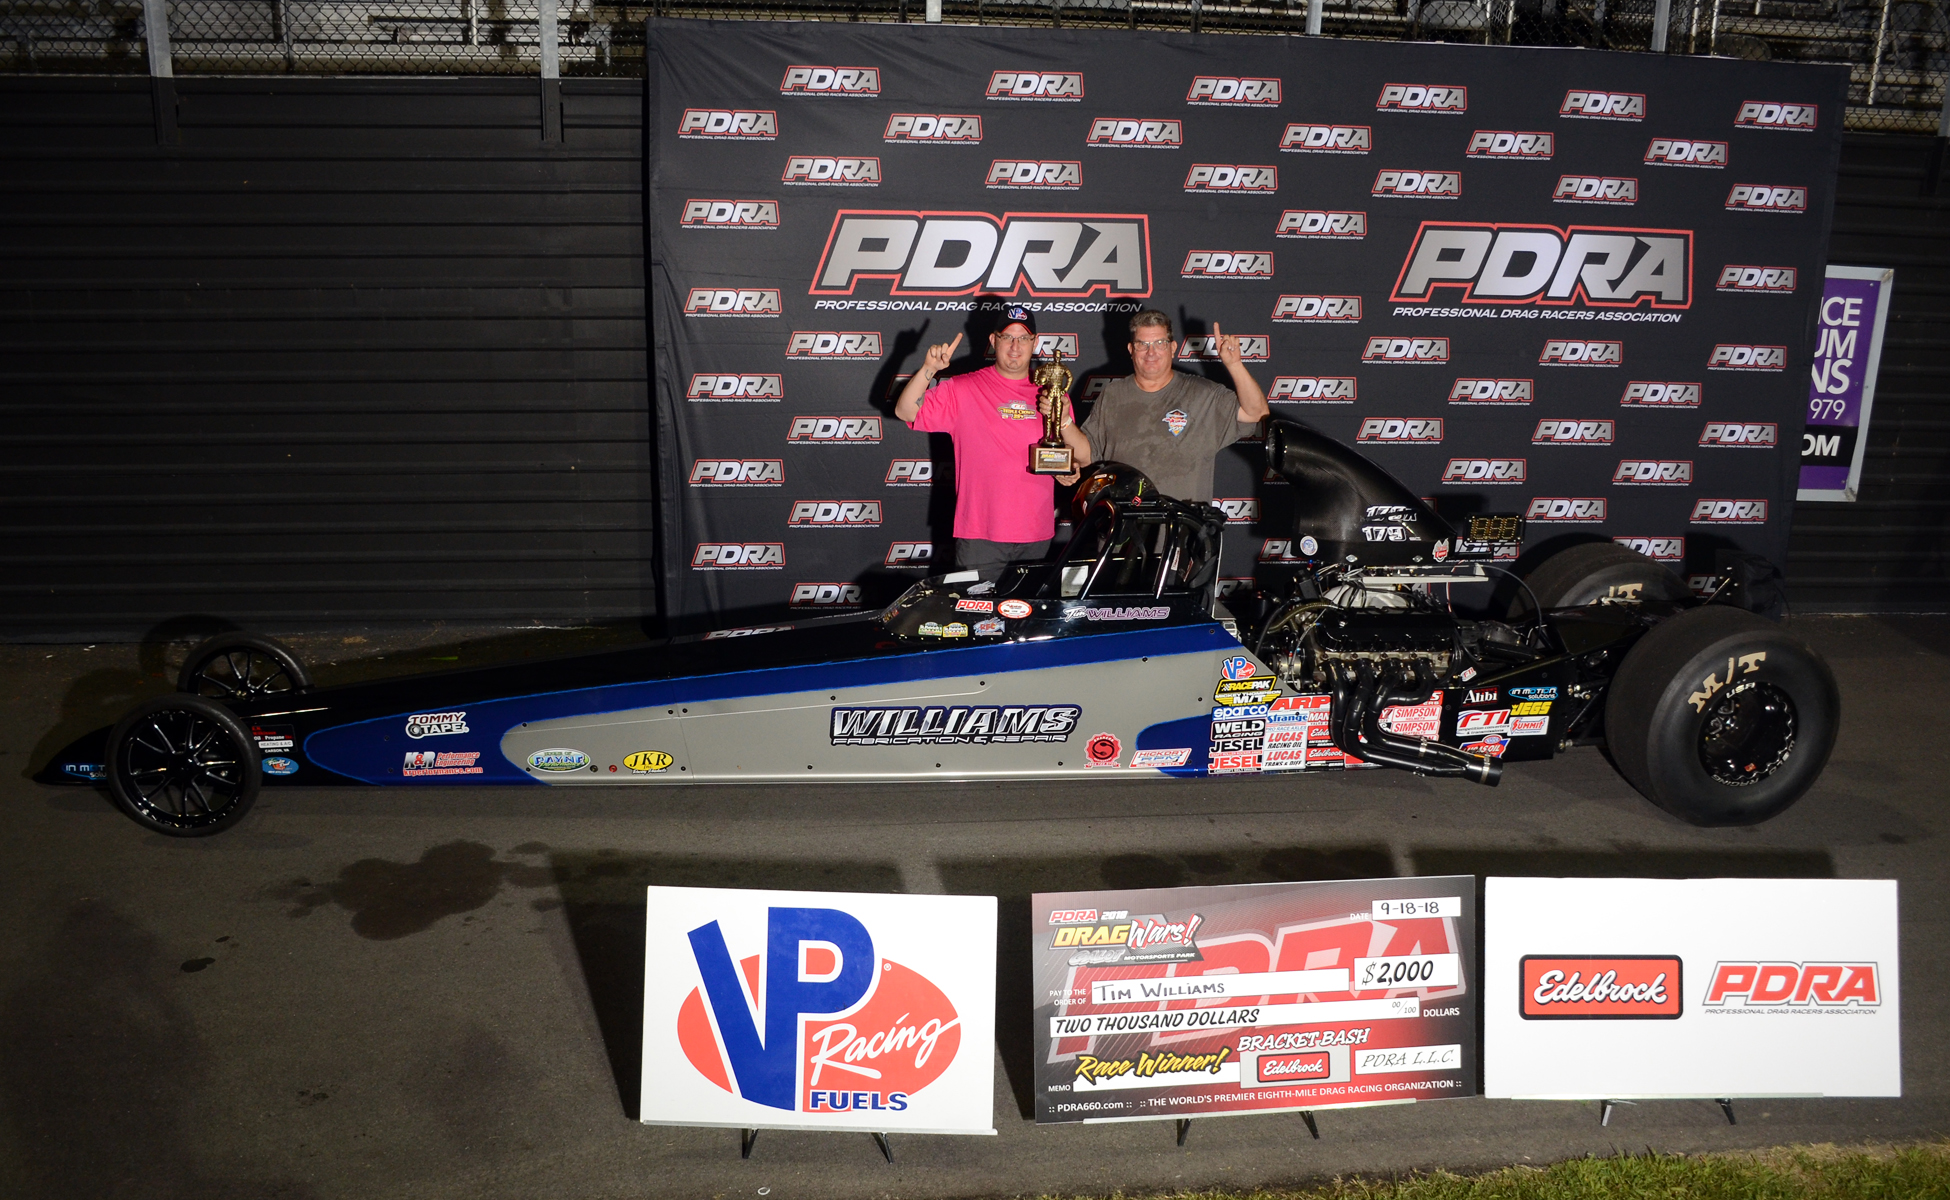 Tim Williams Wins PDRA Dragwars at GALOT